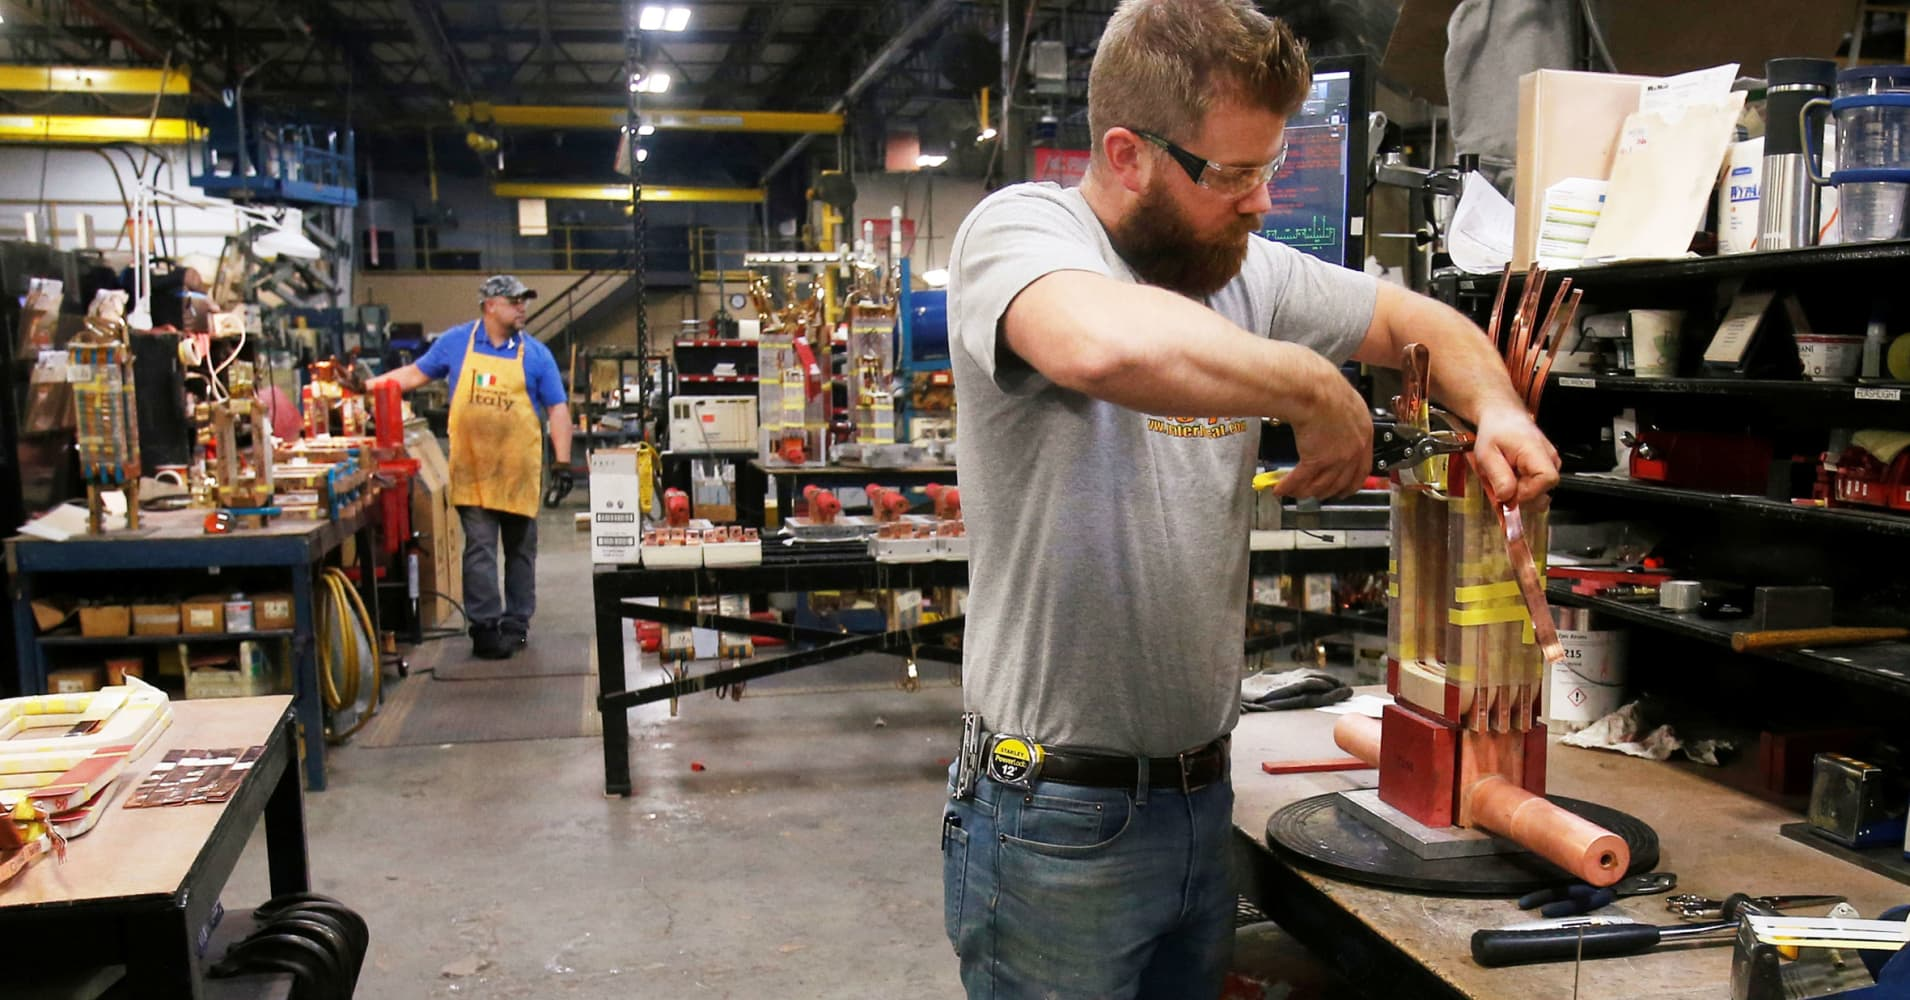 Worker wage gains are keeping up with inflation, and then some